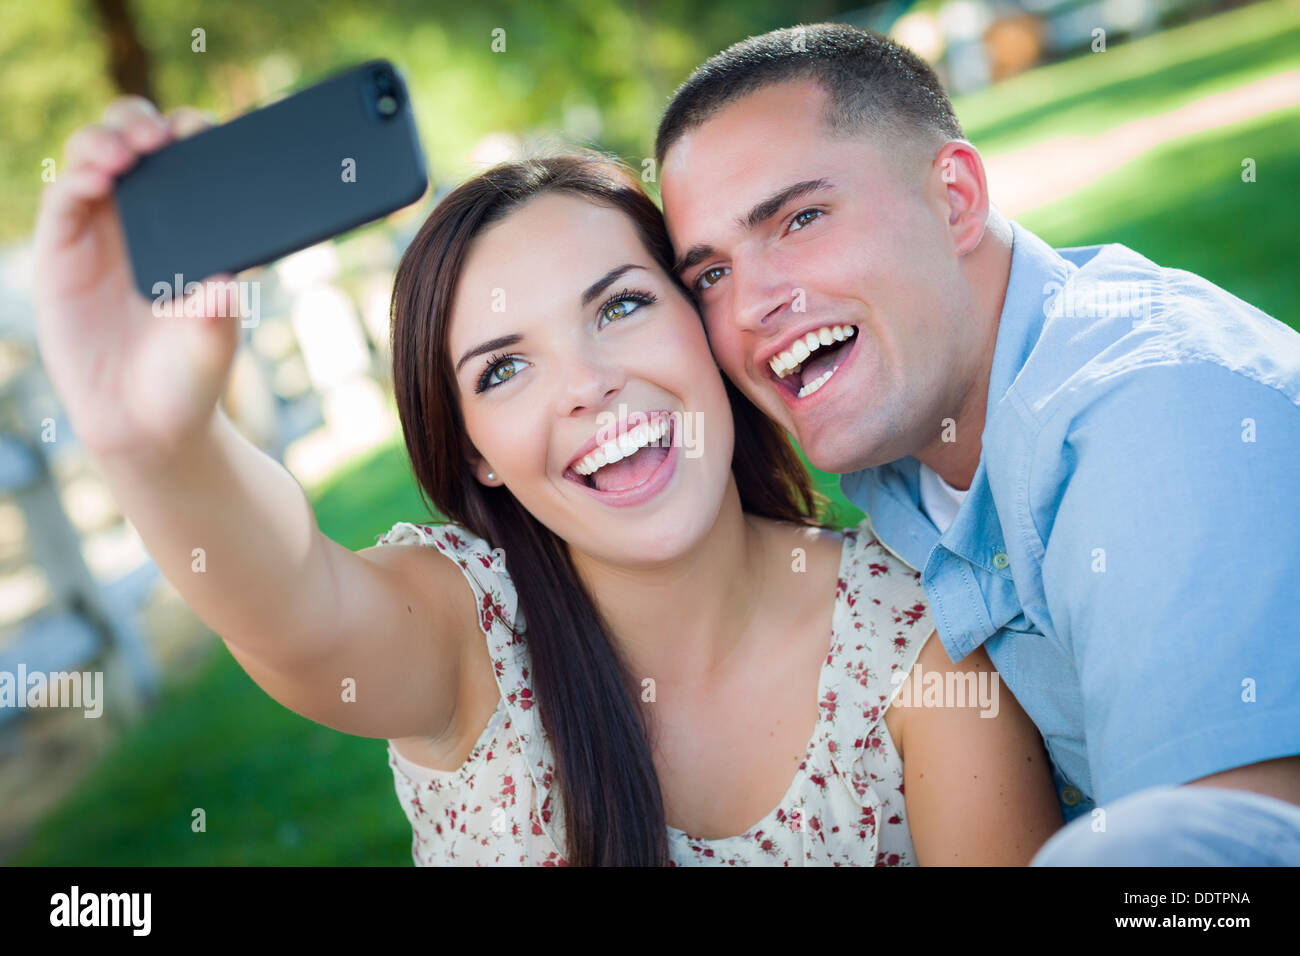 Happy Mixed Race Couple Taking Self Portrait with A Smart Phone in the Park. - Stock Image